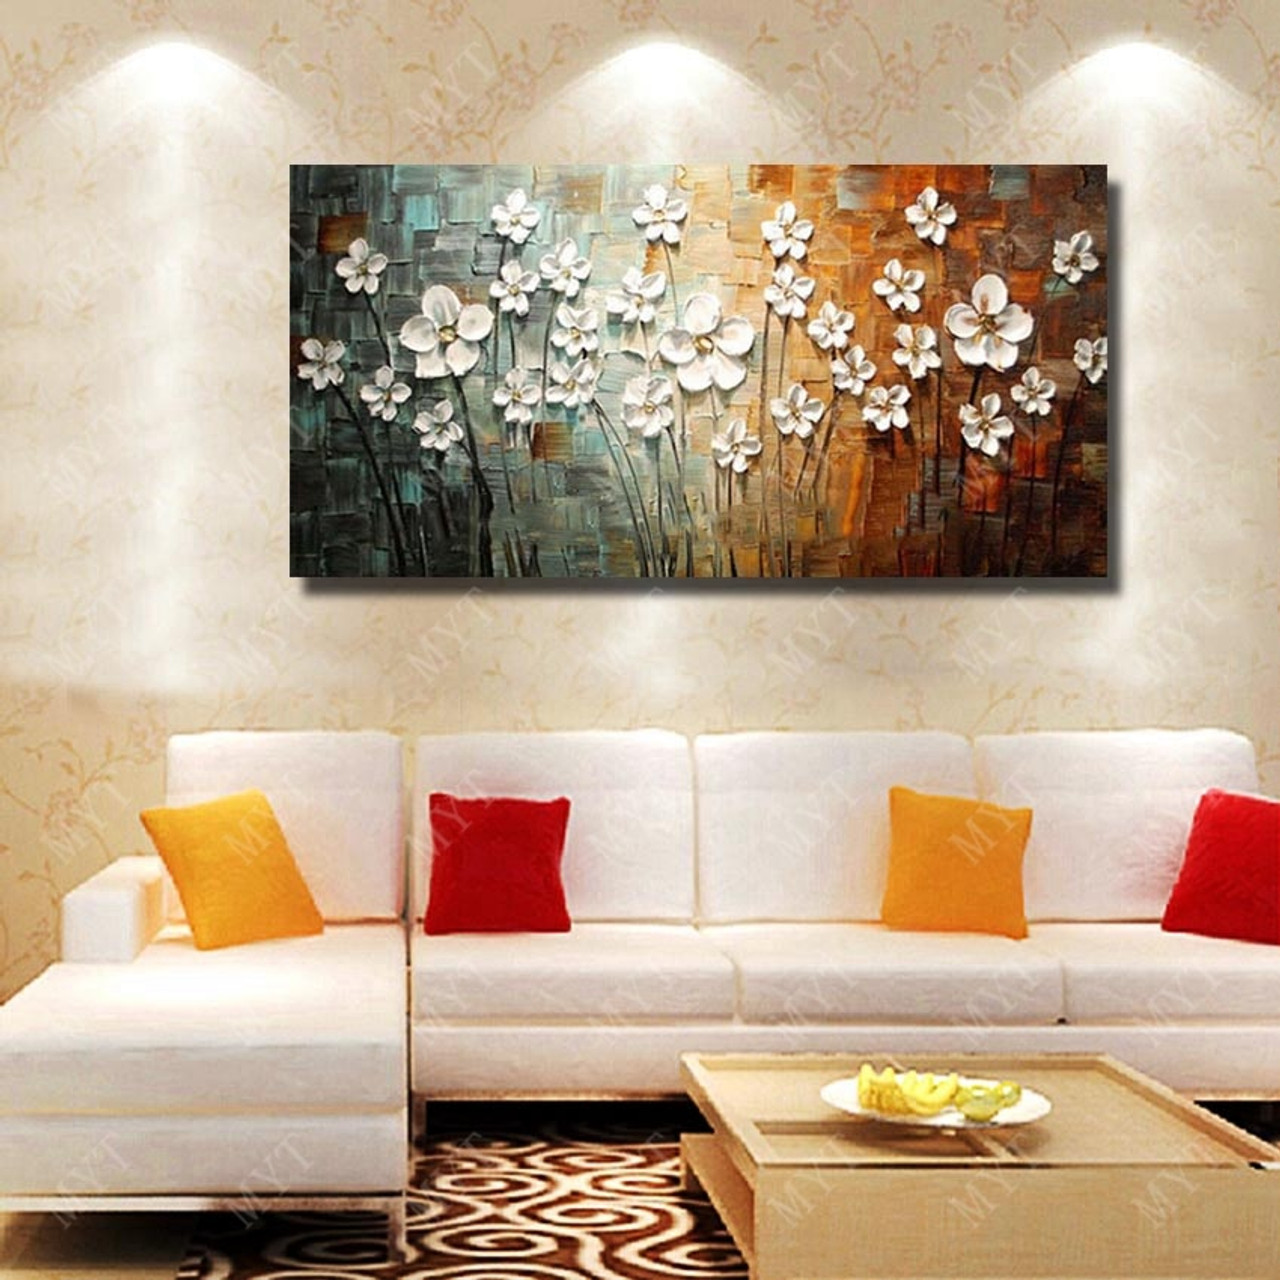 Chinese Wall Art Modern Living Room Wall Decor Flower Painting Large Canvas Art Hand Painted Wall Pictures No Framed Onshopdeals Com